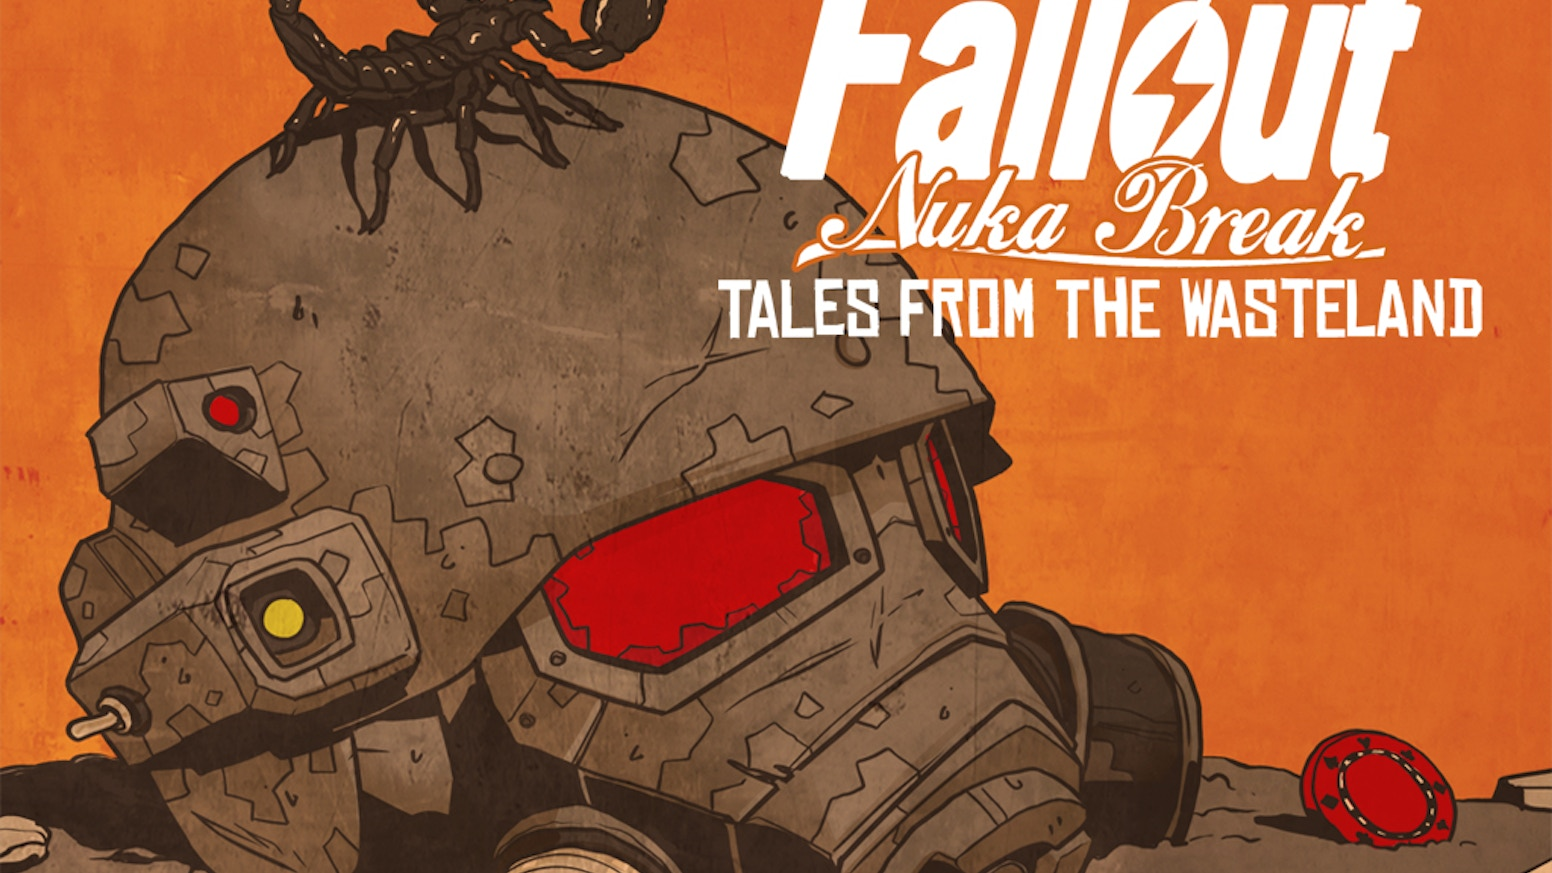 fallout nuka break tales from the wasteland by wayside creations